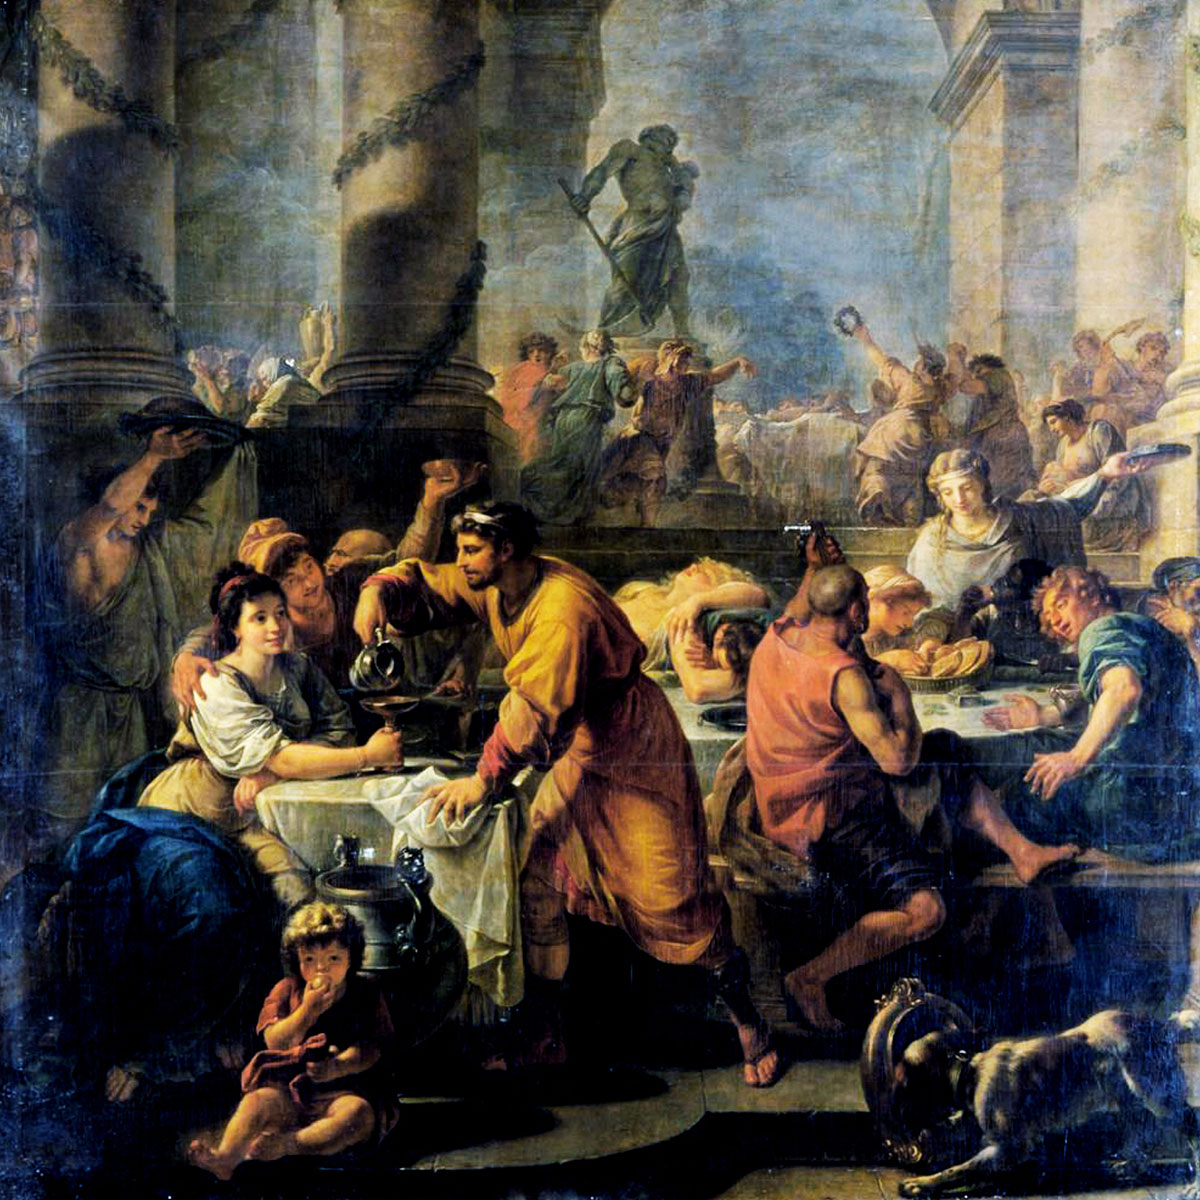 Painting of Saturnalia by Cntoine Callet